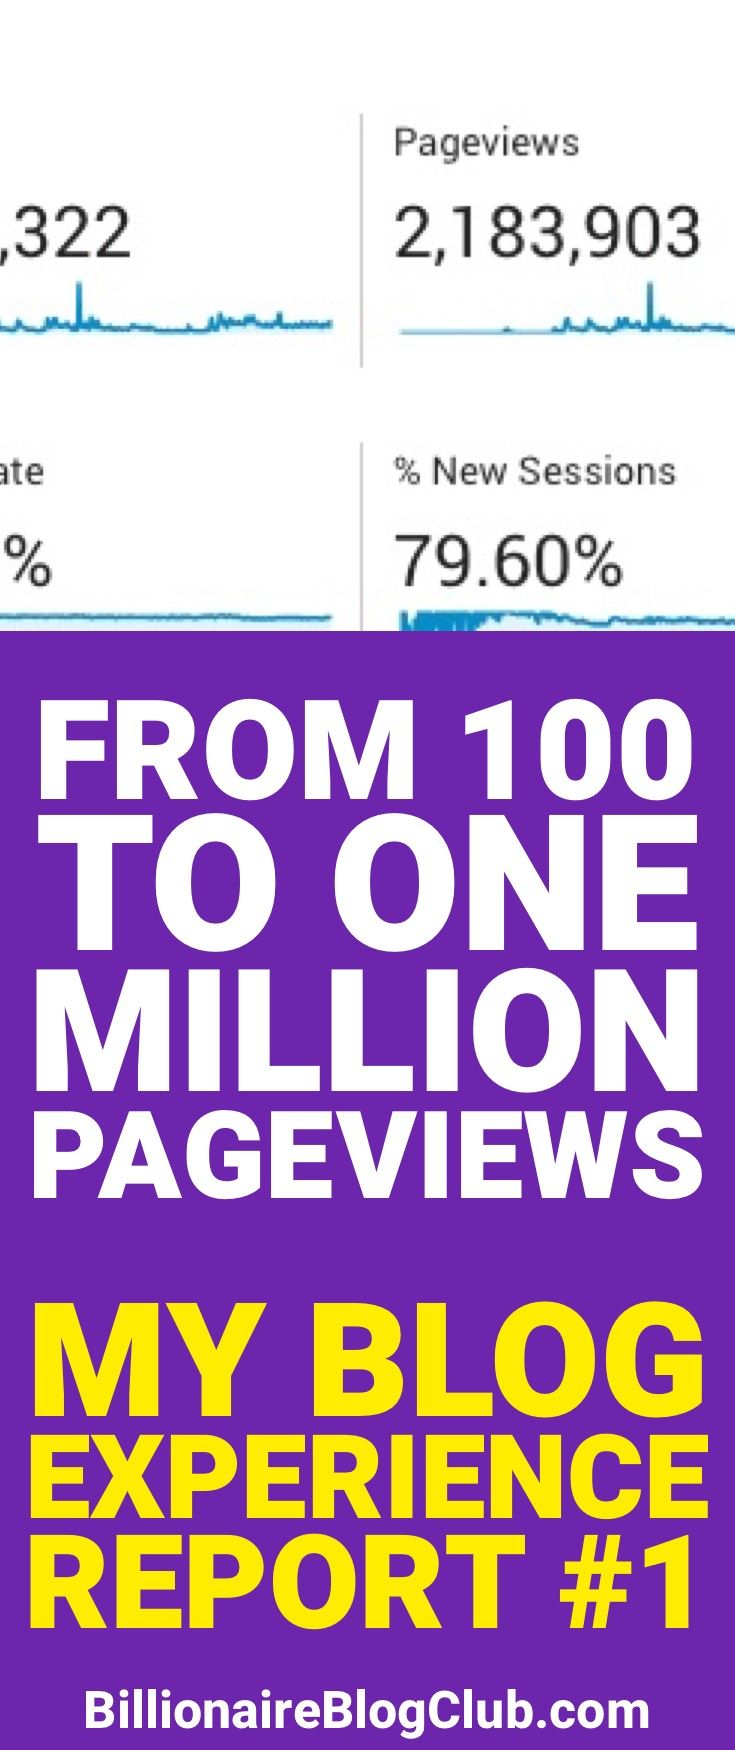 Want to understand what it takes to go from 100 pages to 1 million pageviews? I share my experience with growing my blog in this experience report.